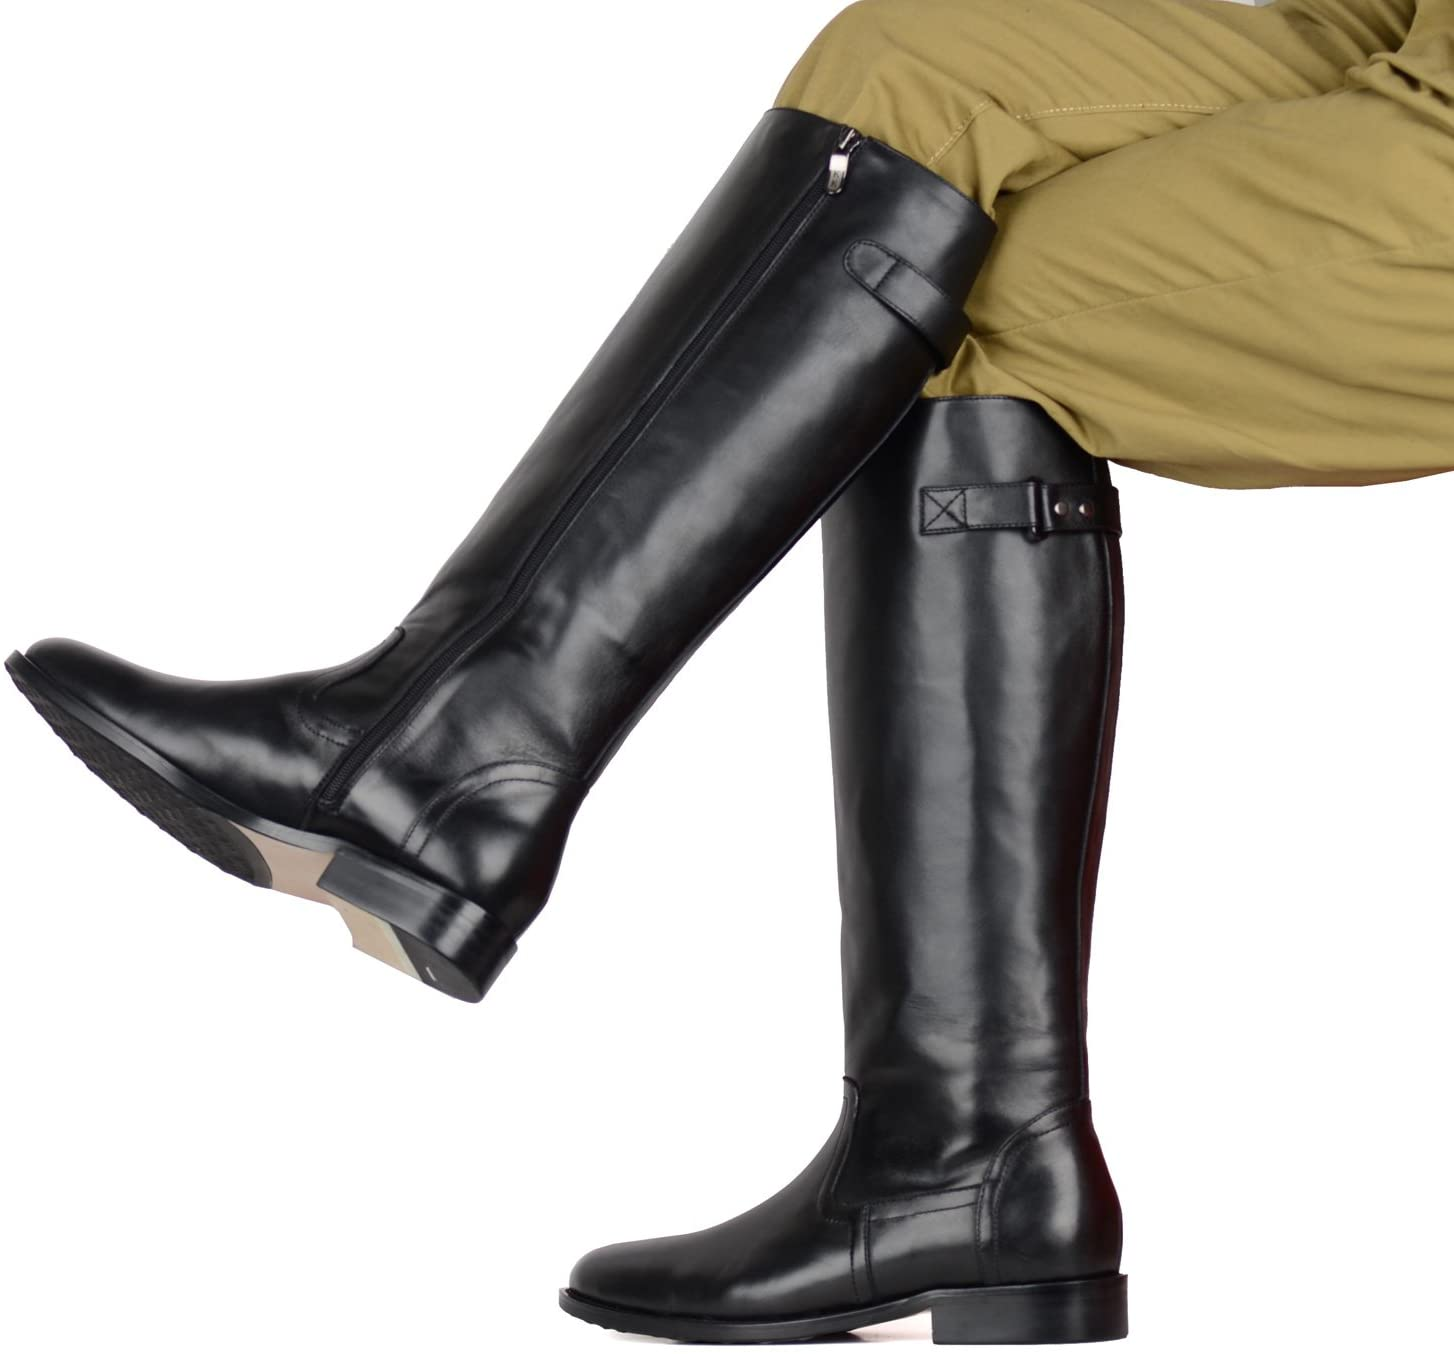 Riding boots became popular in the 1600s as part of the military uniform